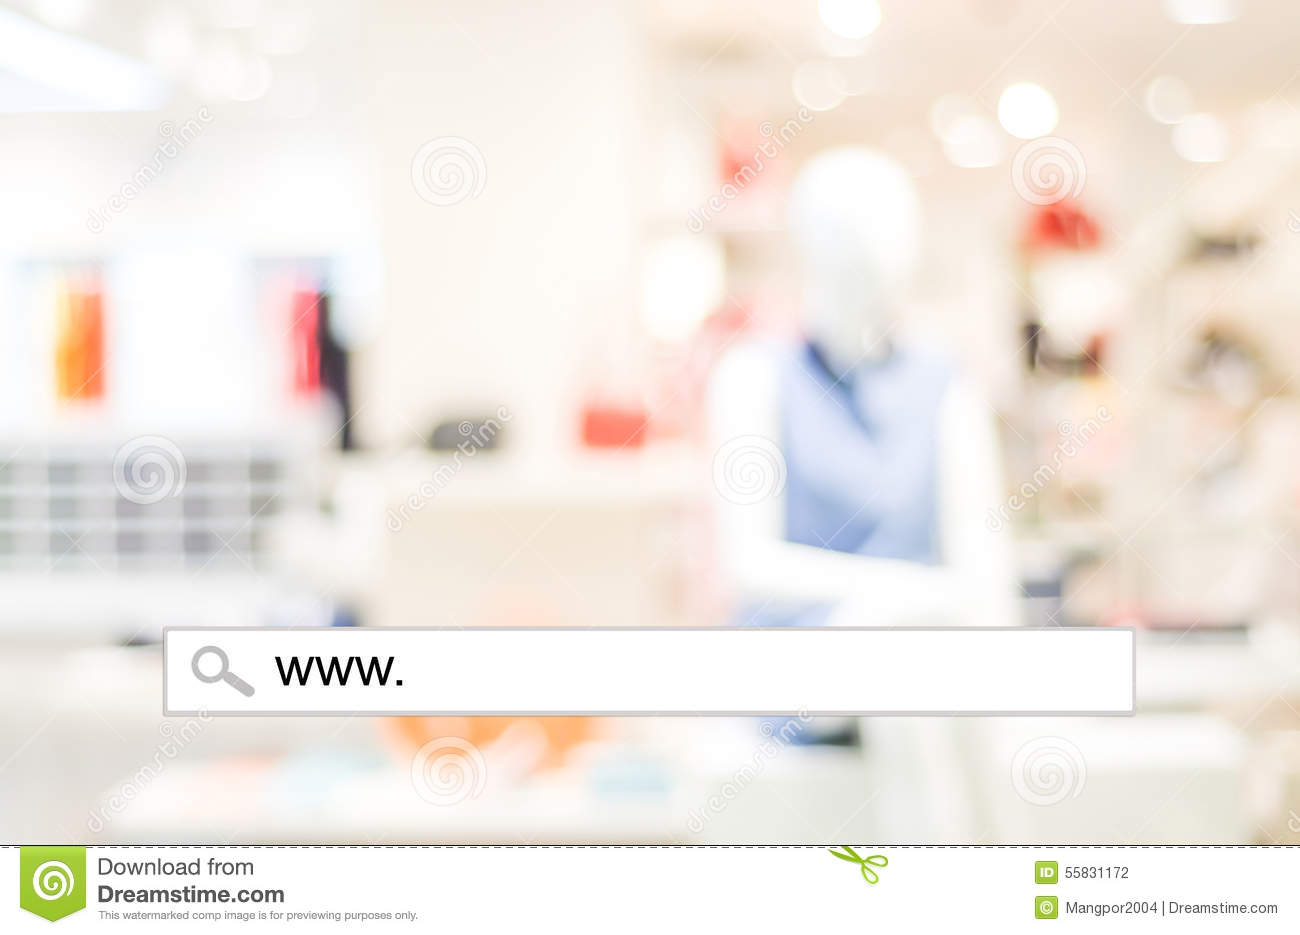 Background image e - Blur Store And Bokeh Light With Address Bar Online Shopping Background Stock Photography